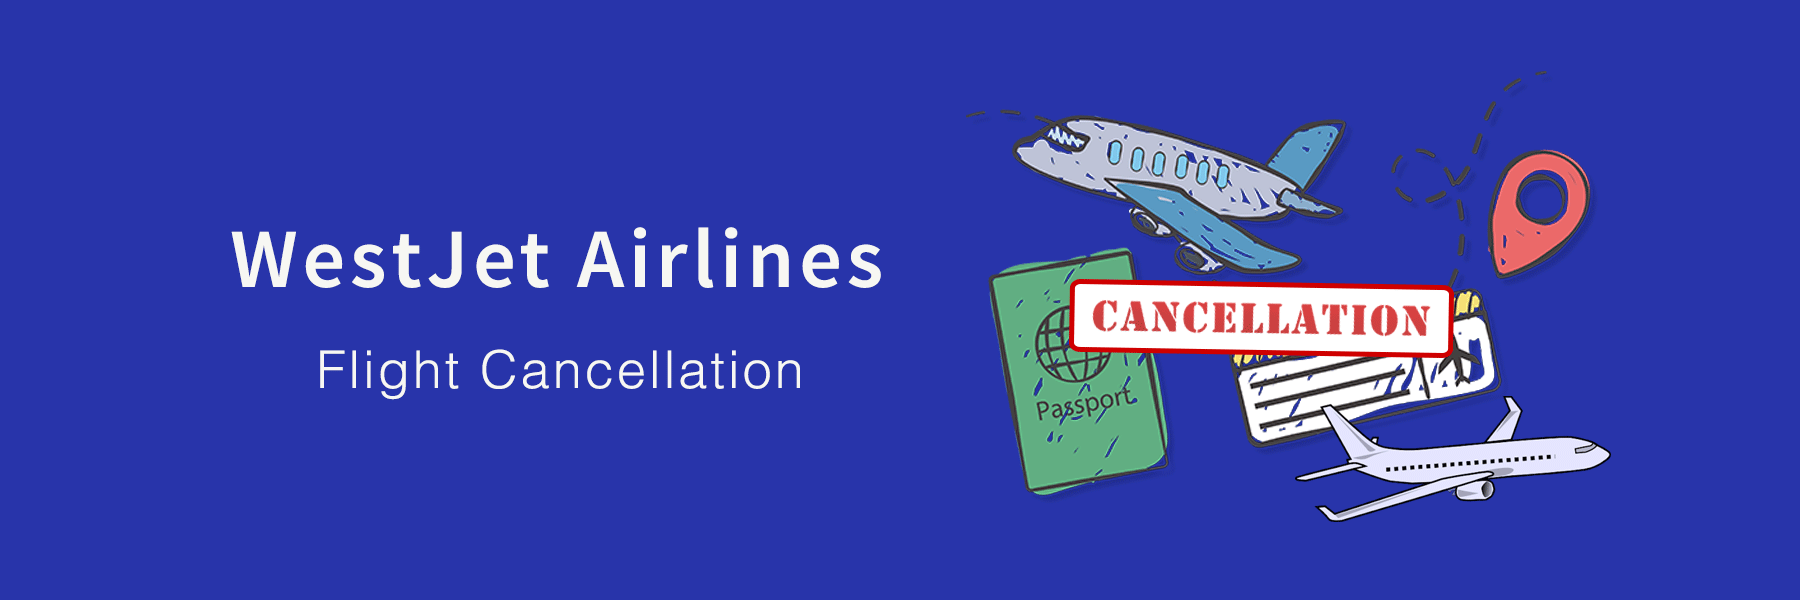 WestJet Cancellation